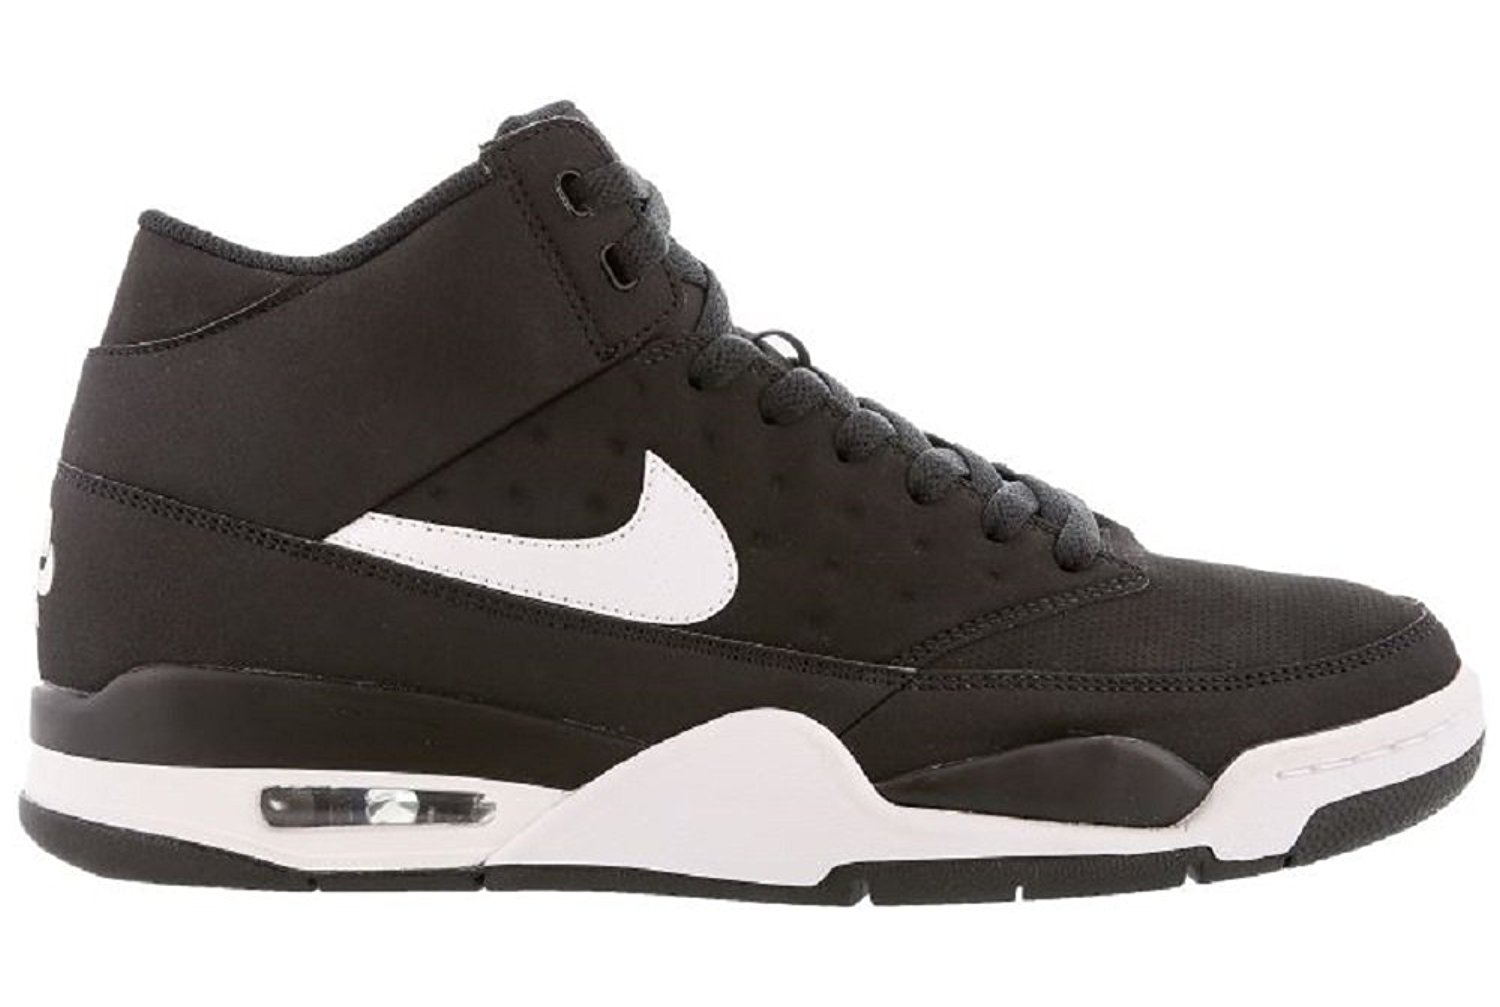 carbón Mensurable Escarpado  Buy Nike Air Flight Classic Mens Basketball Shoe in Cheap Price on  Alibaba.com